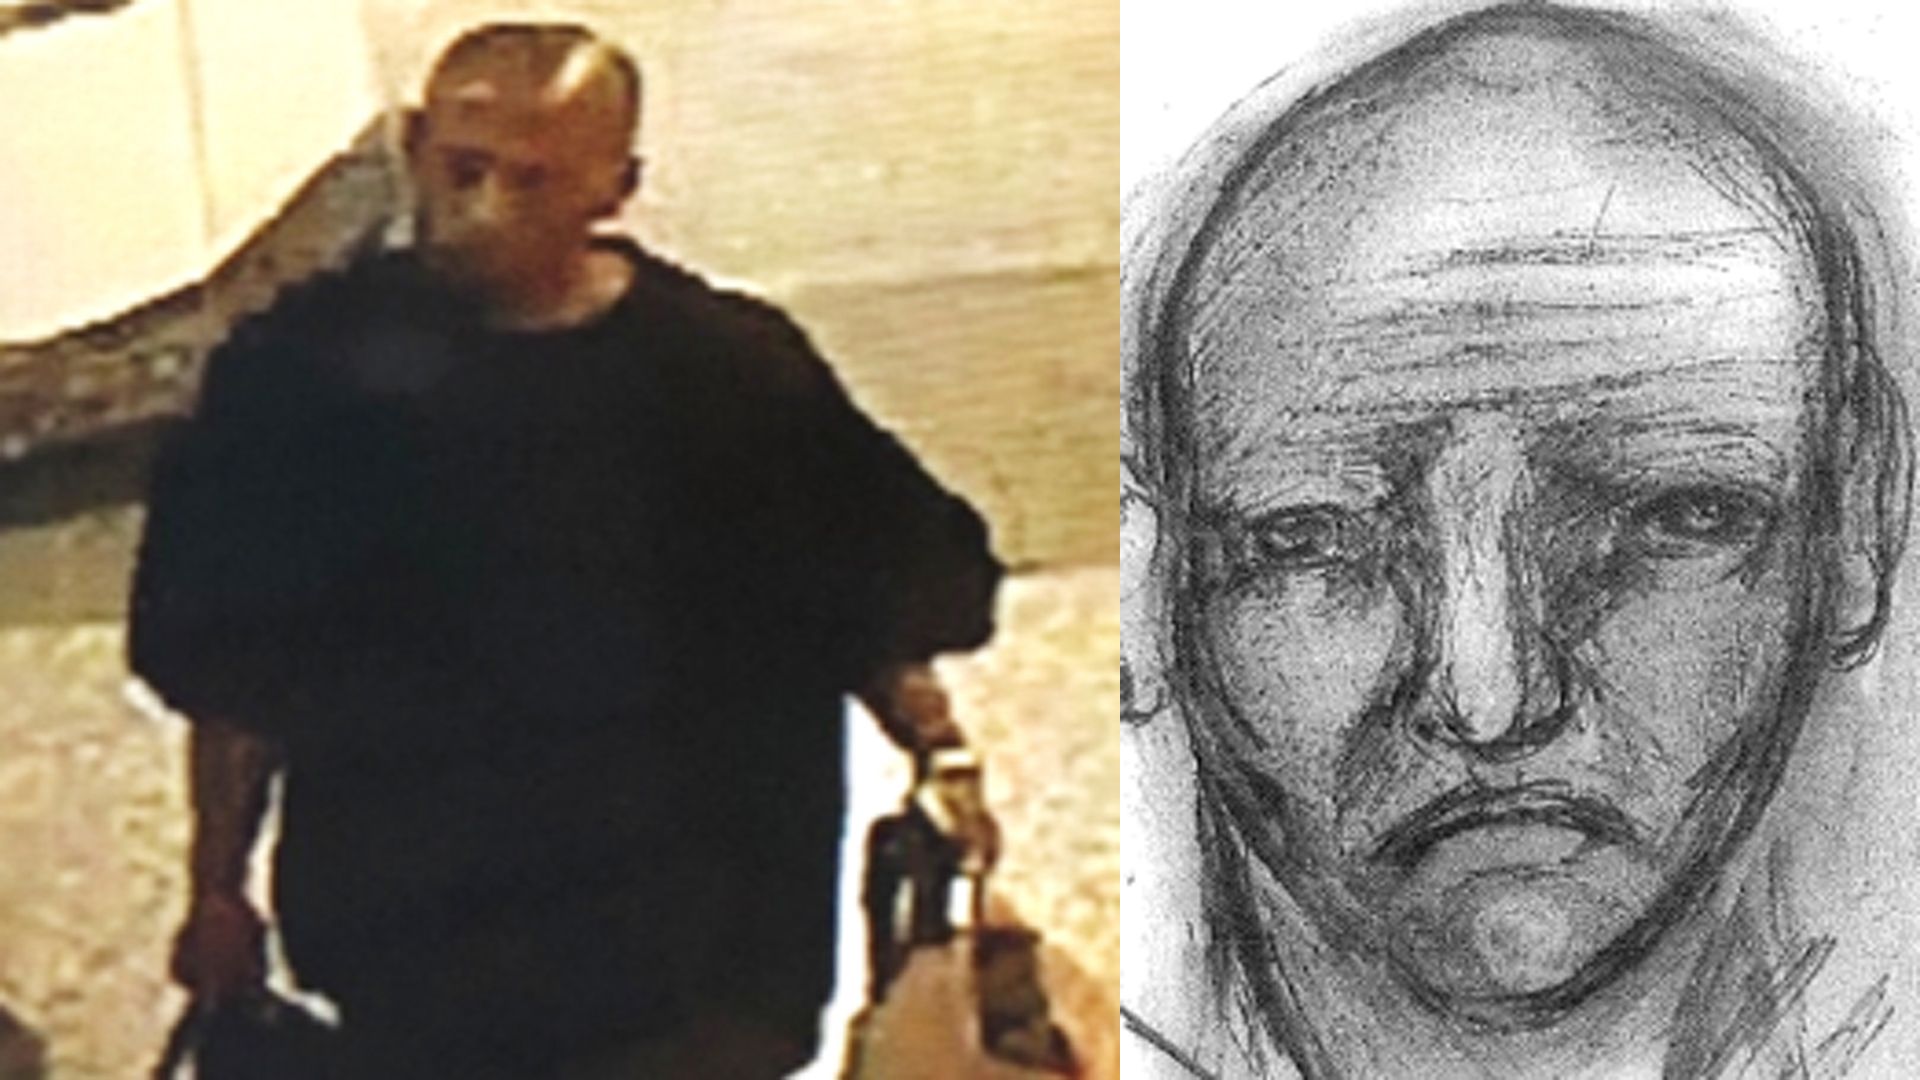 LAPD released this surveillance image and suspect sketch of a man being sought in connection with a rape and assault at a Metro Station in East Hollywood on March 14, 2019.